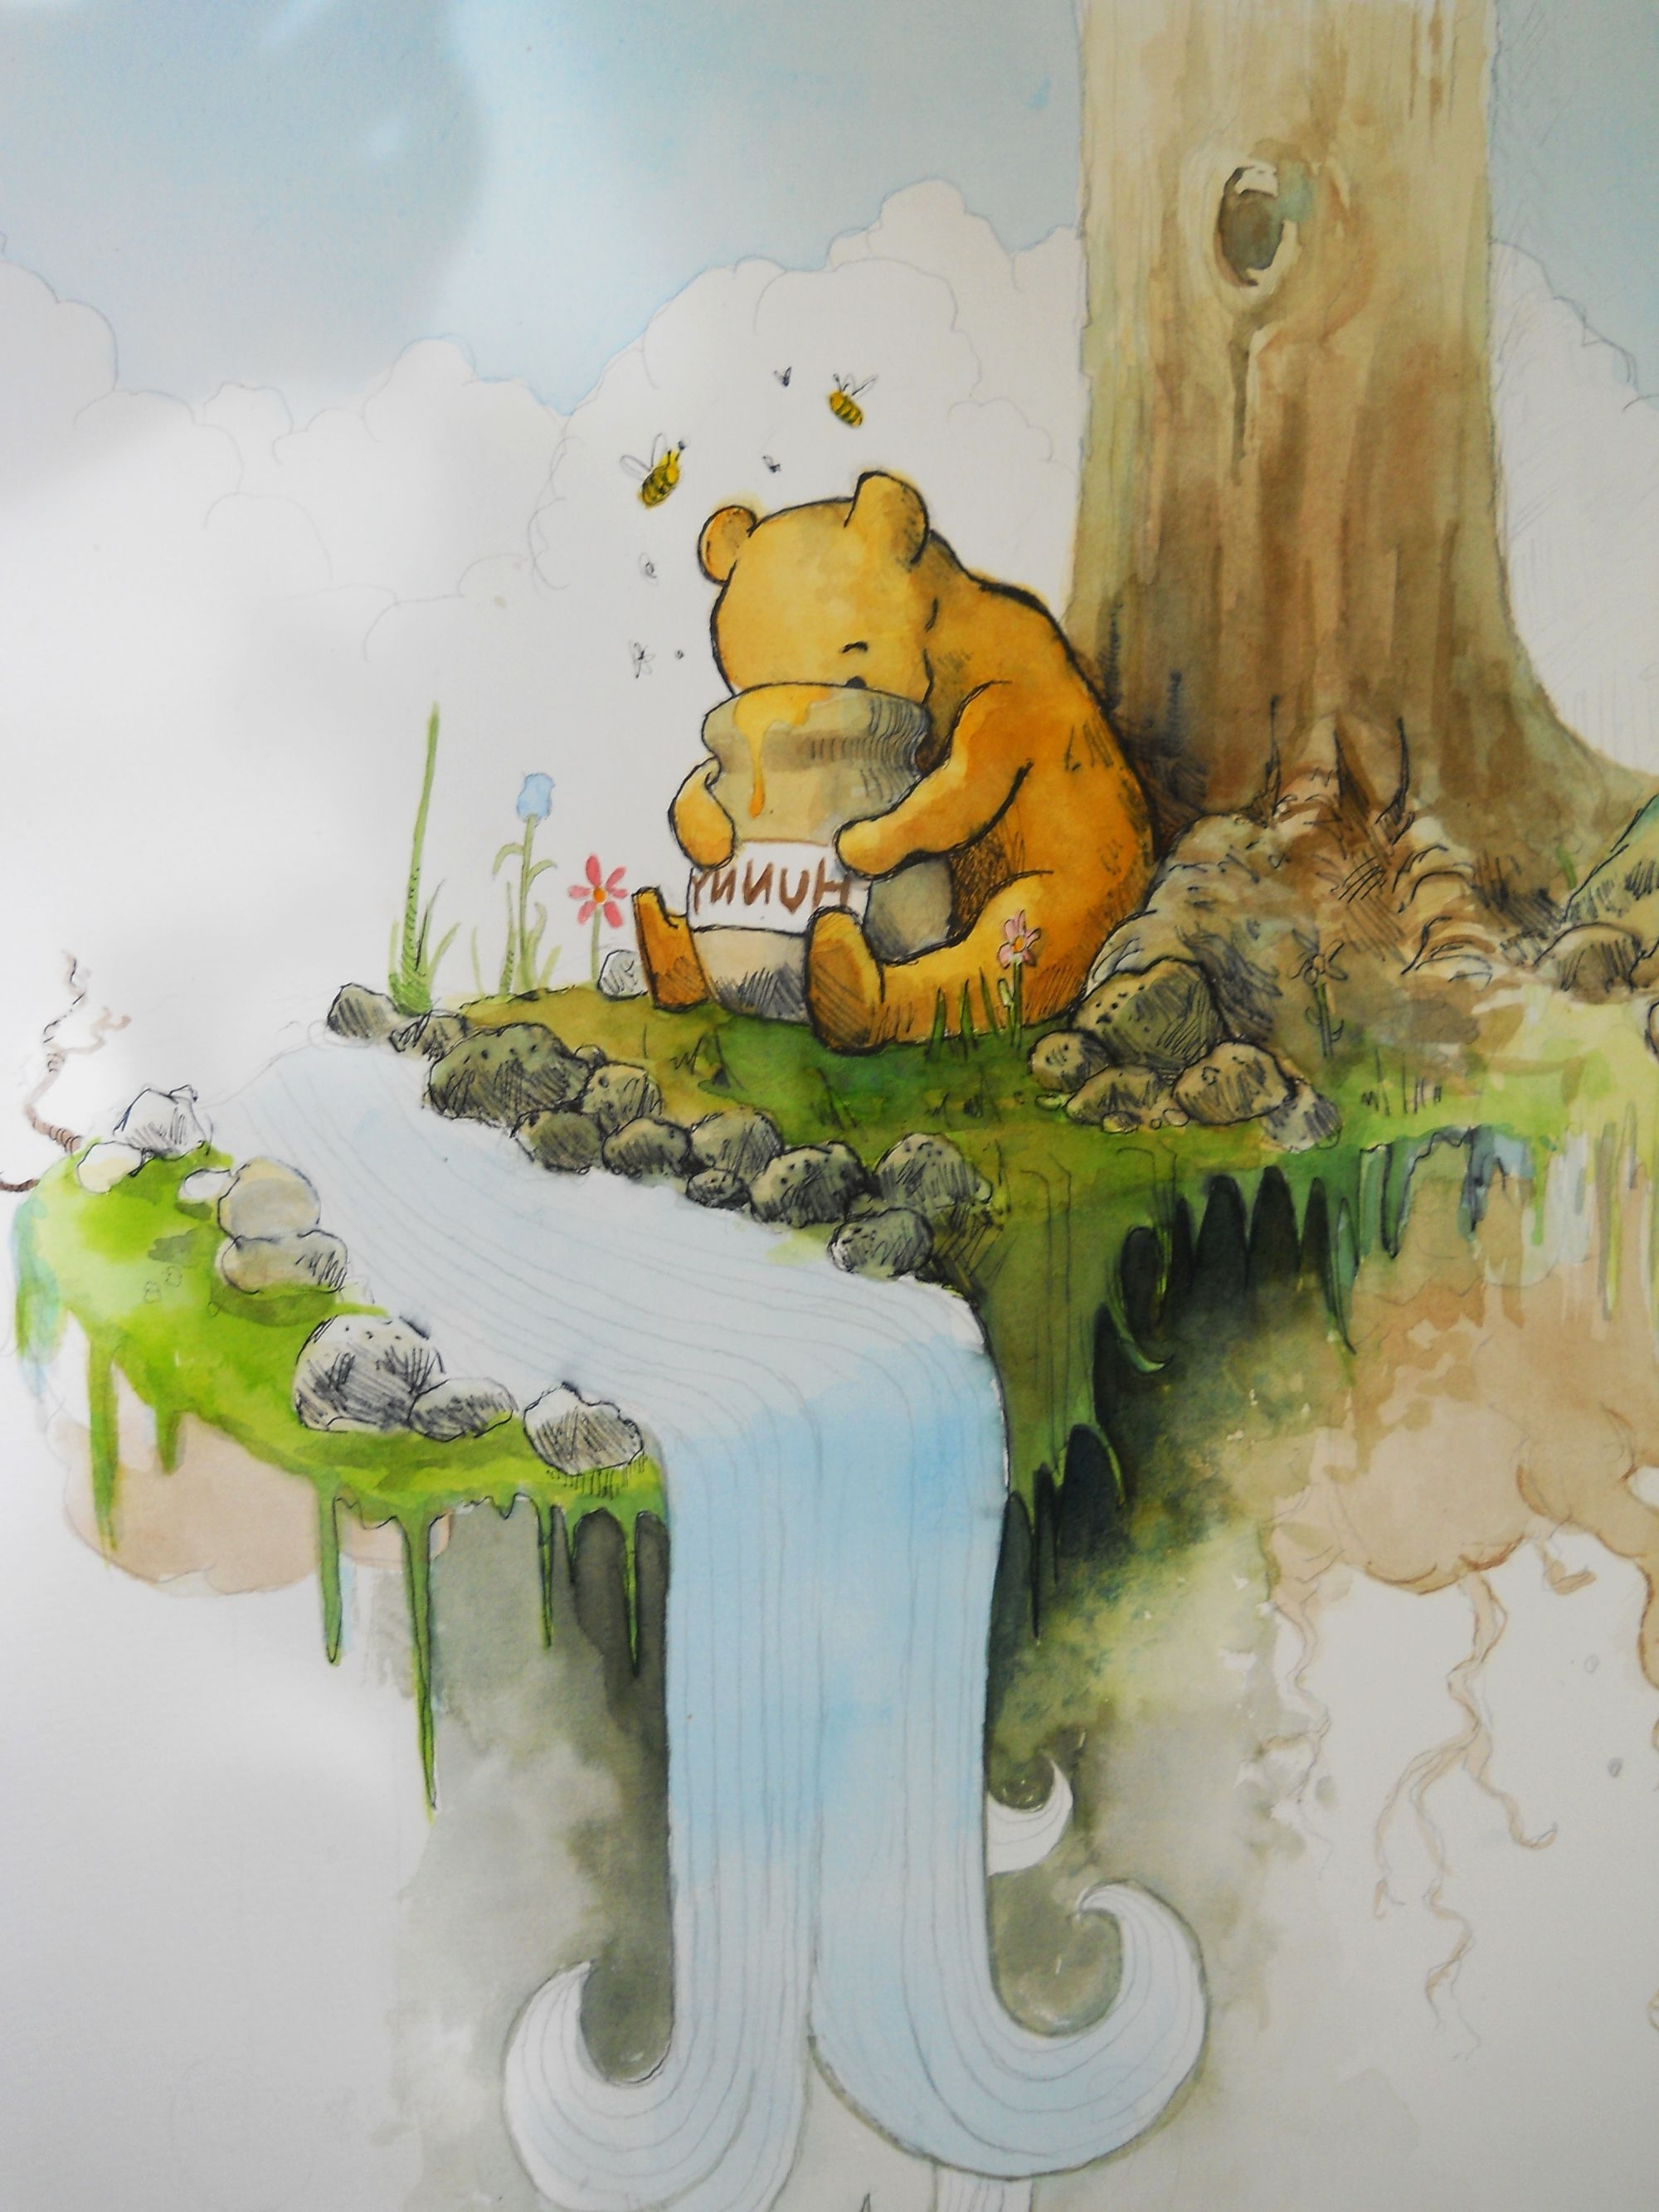 2018 Winnie The Poohoswalddent On Deviantart Throughout Classic Pooh Art (View 3 of 15)